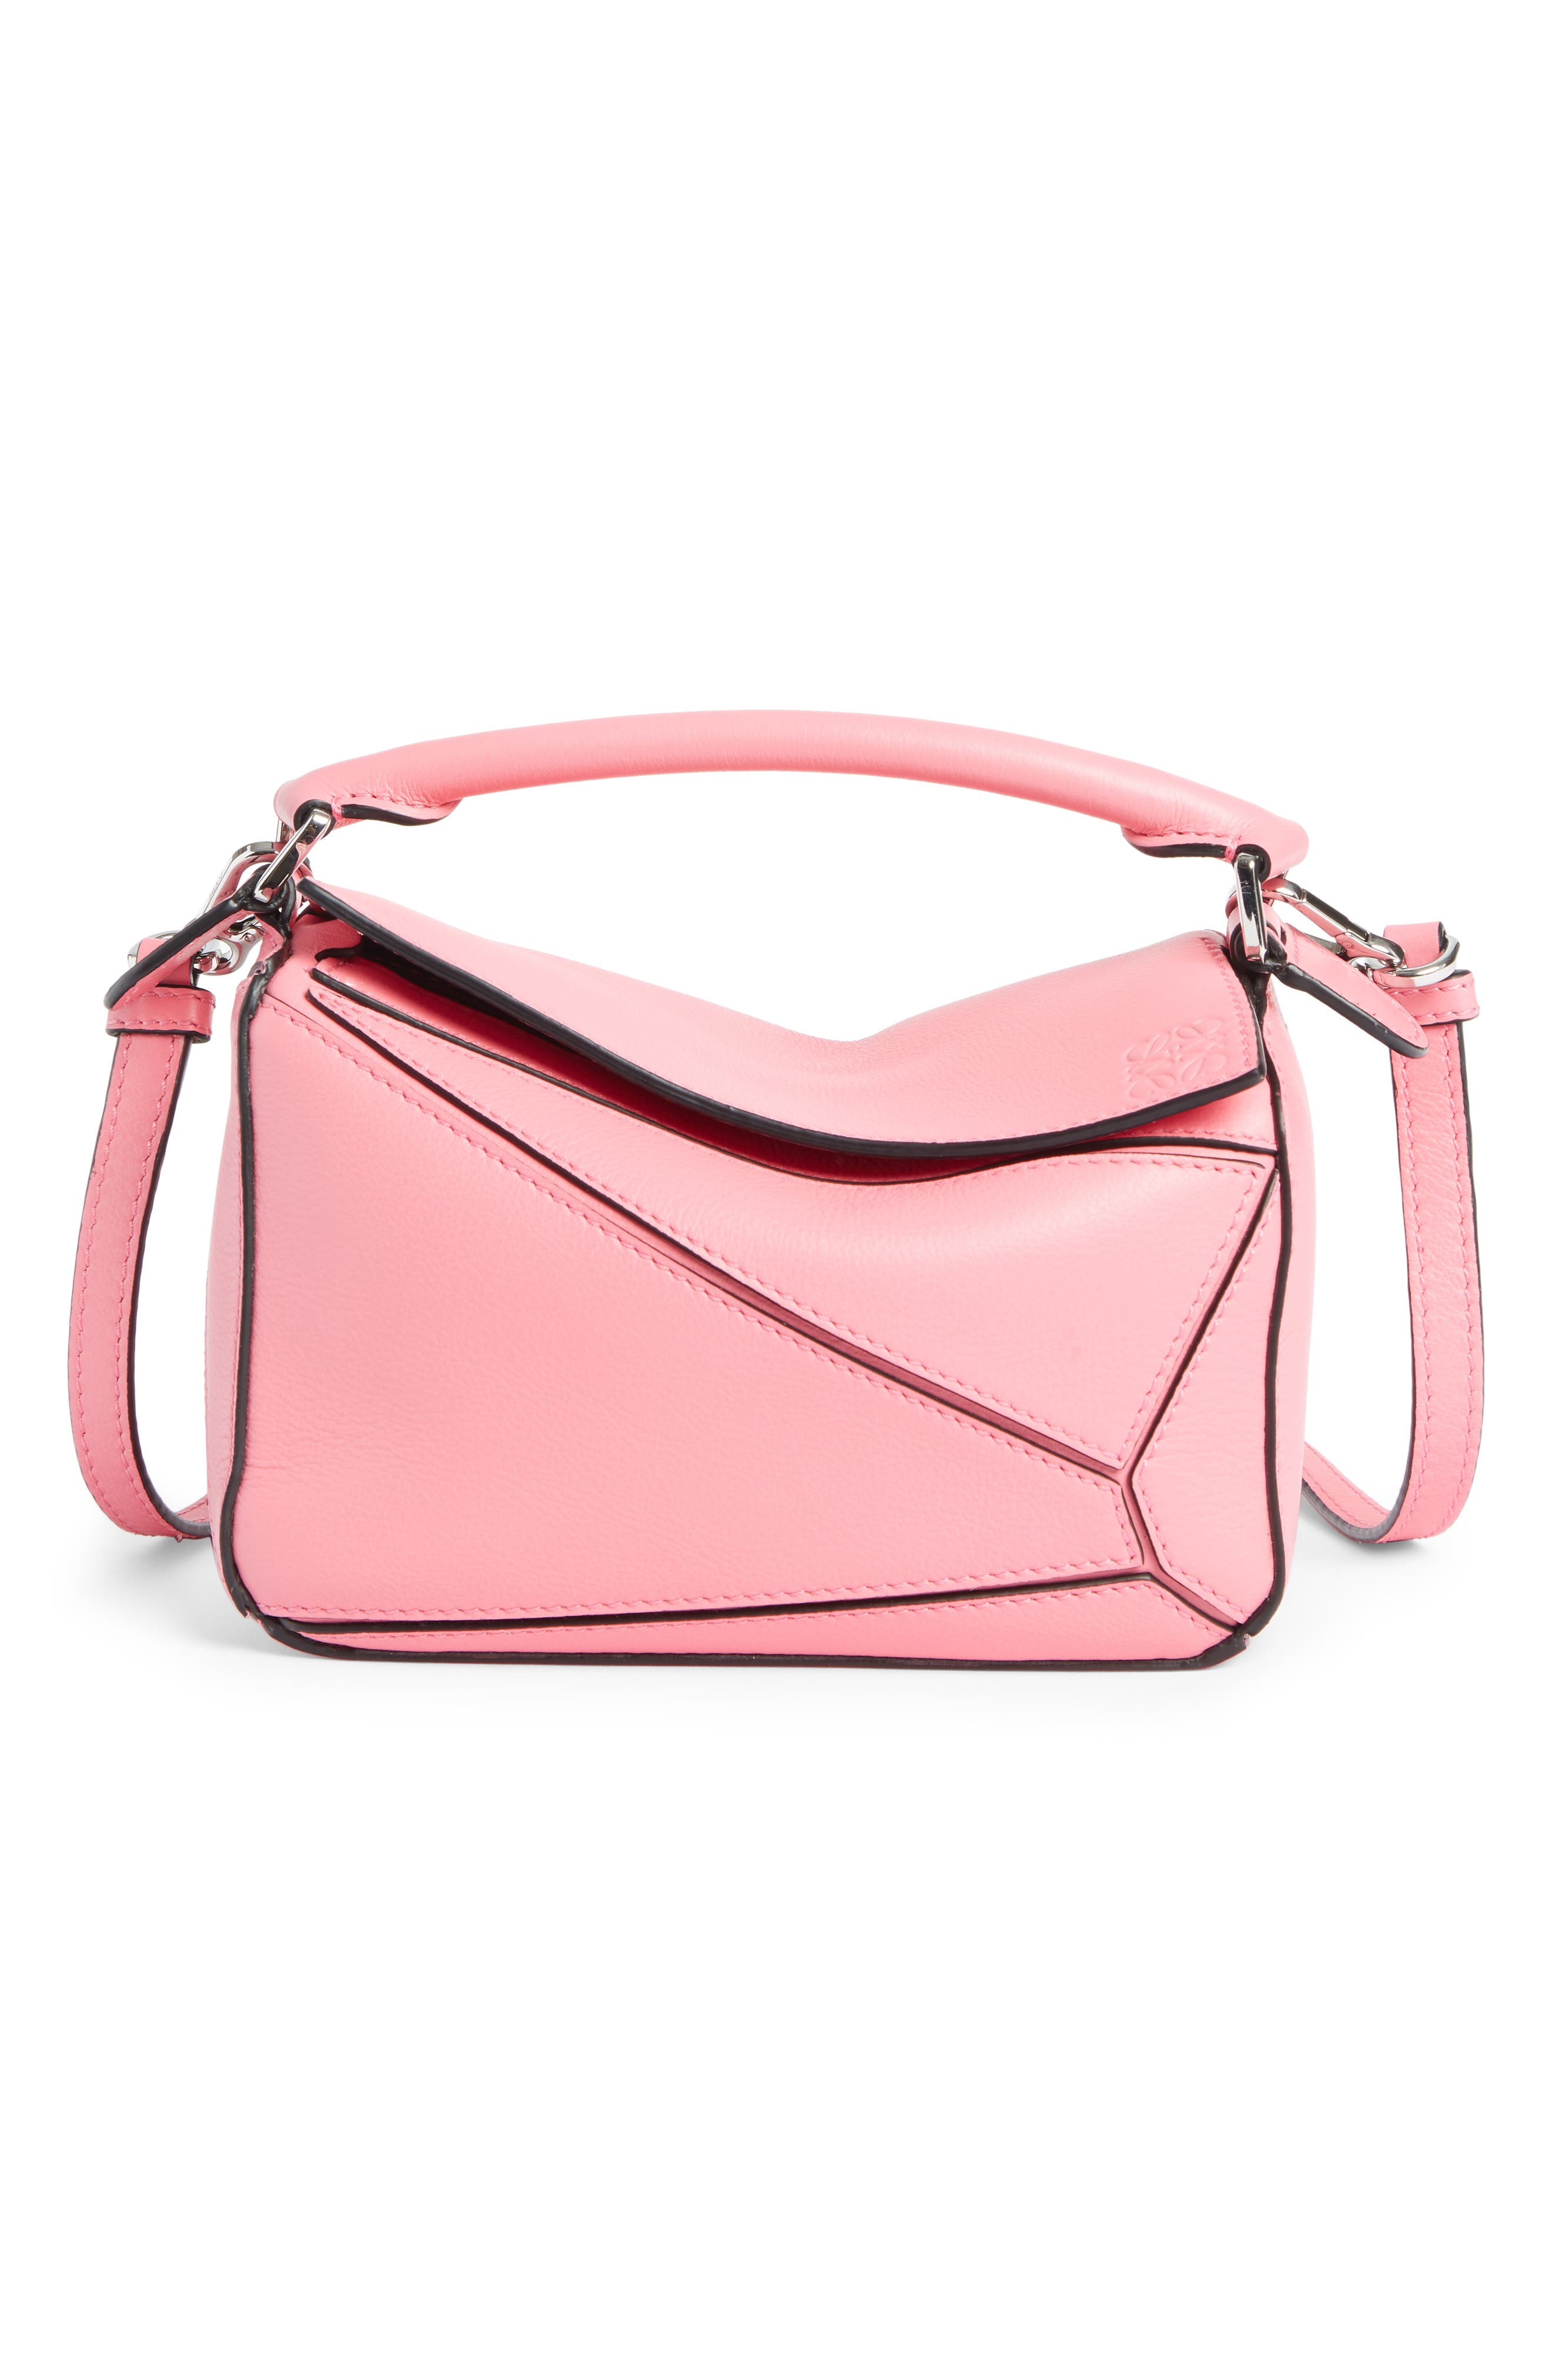 Mini Puzzle Calfskin Leather Bag - Pink in Wild Rose